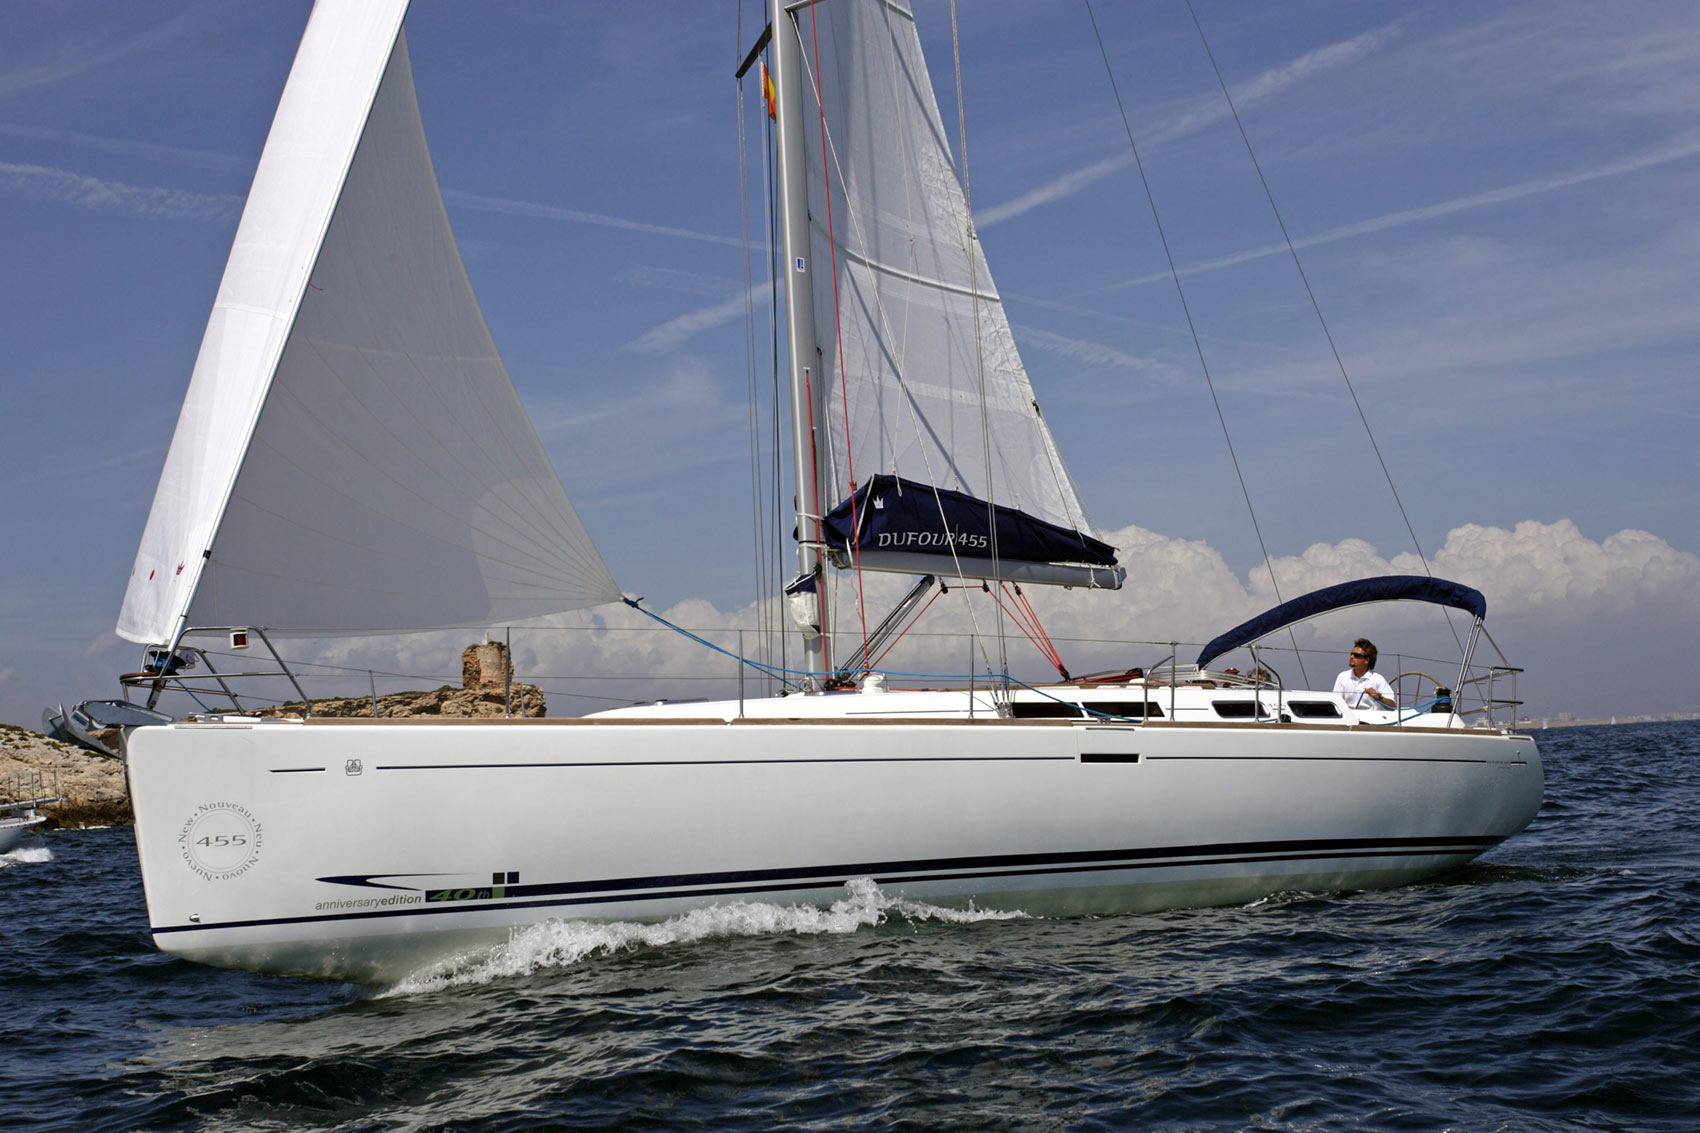 Dufour 455 Economy - Sailing Yacht for Charter in Greece